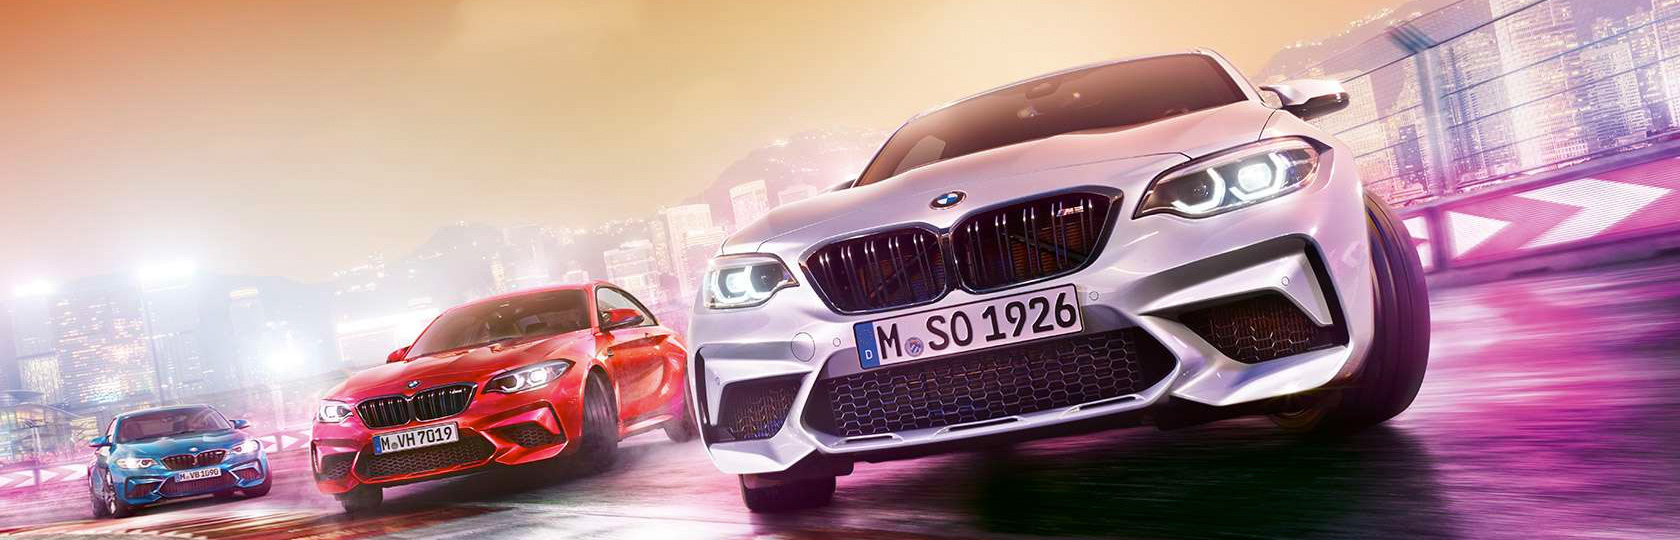 BMW Options for Higher Performance and an Enhanced Driving Experience